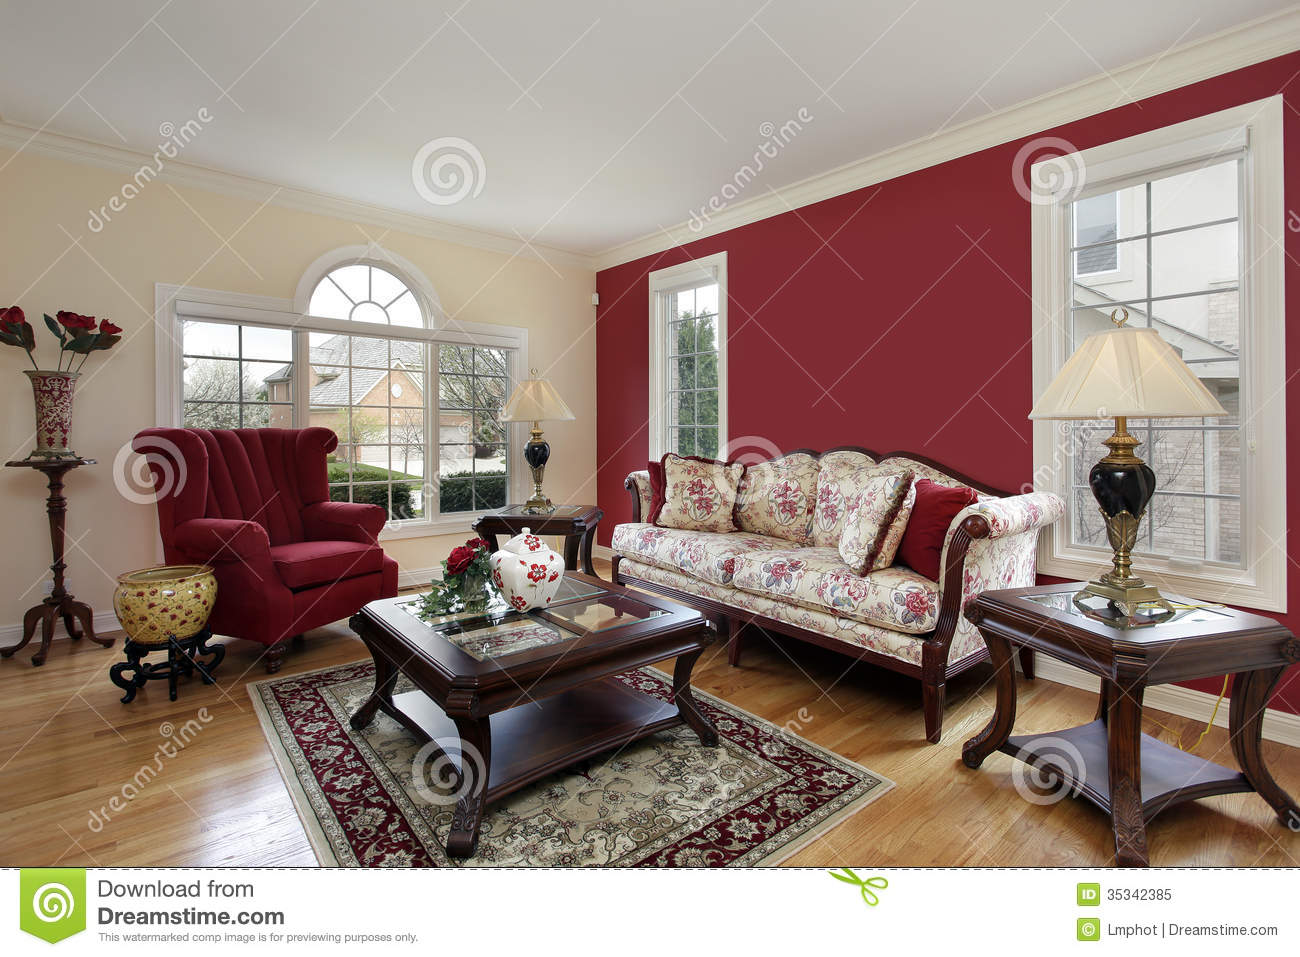 Living room with red and cream colored walls royalty free stock photo image 35342385 - Living room with cream walls ...